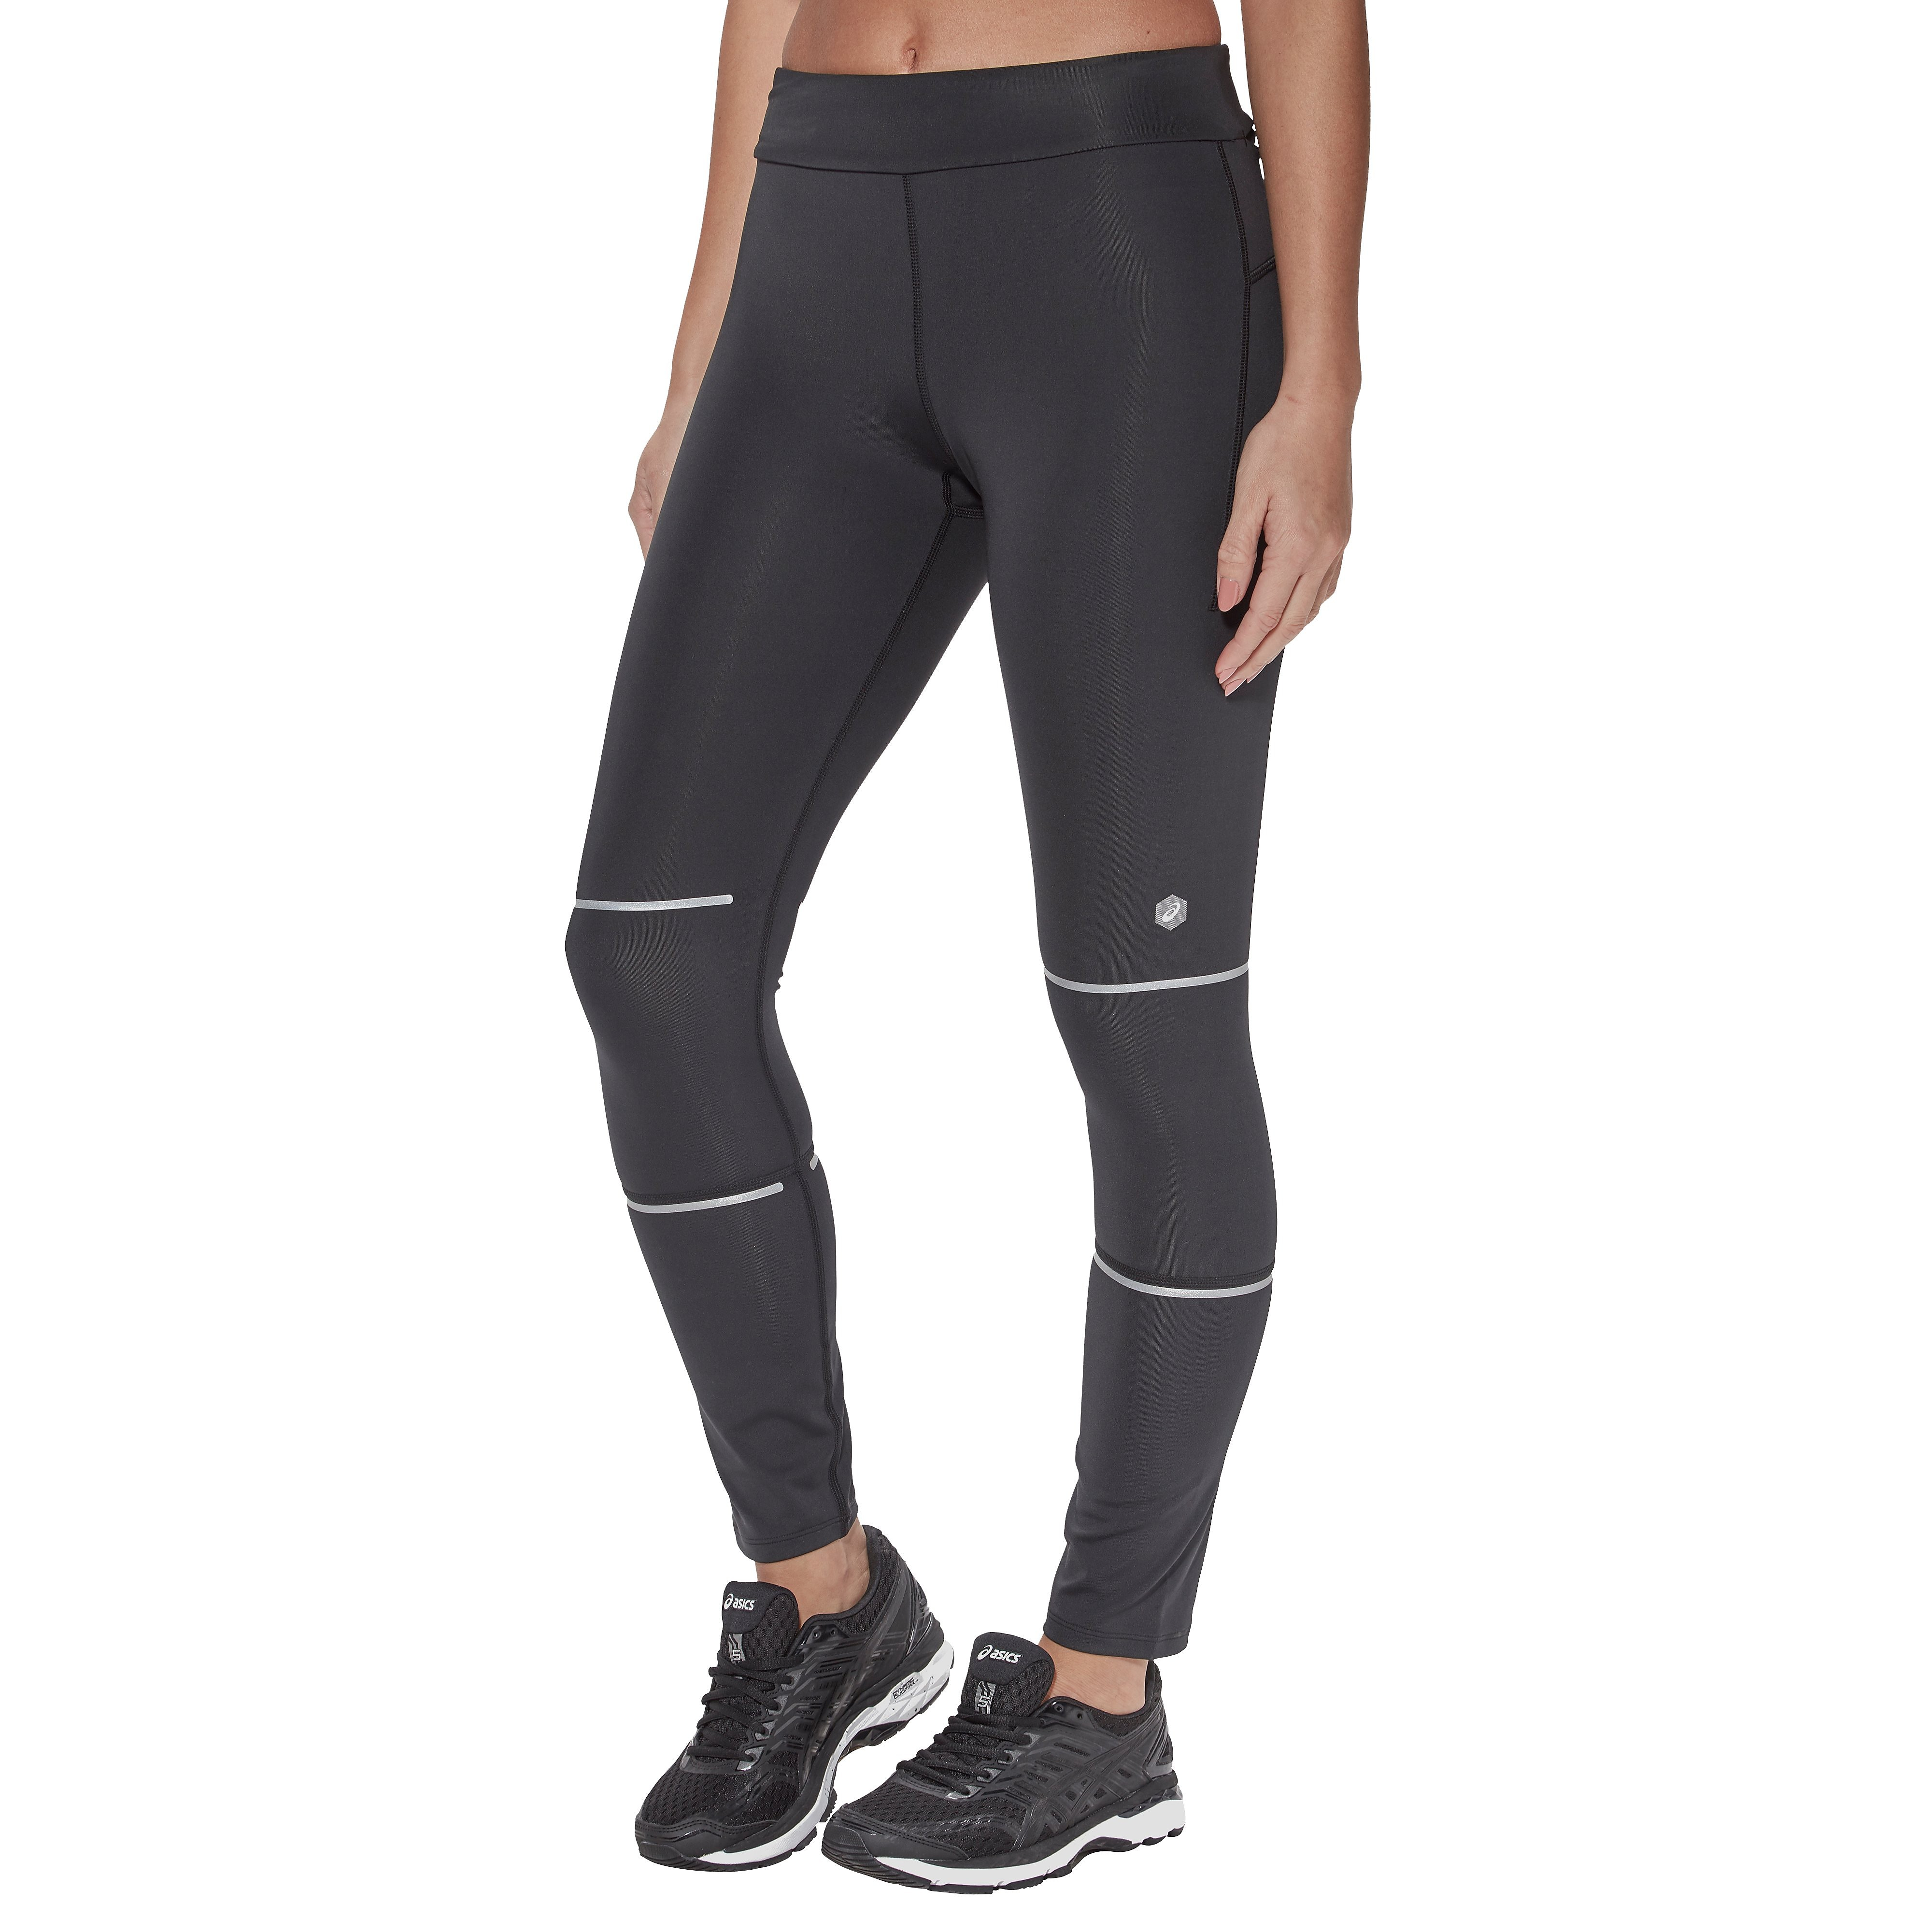 ASICS Lite-Show 7/8 Women's Training Tights